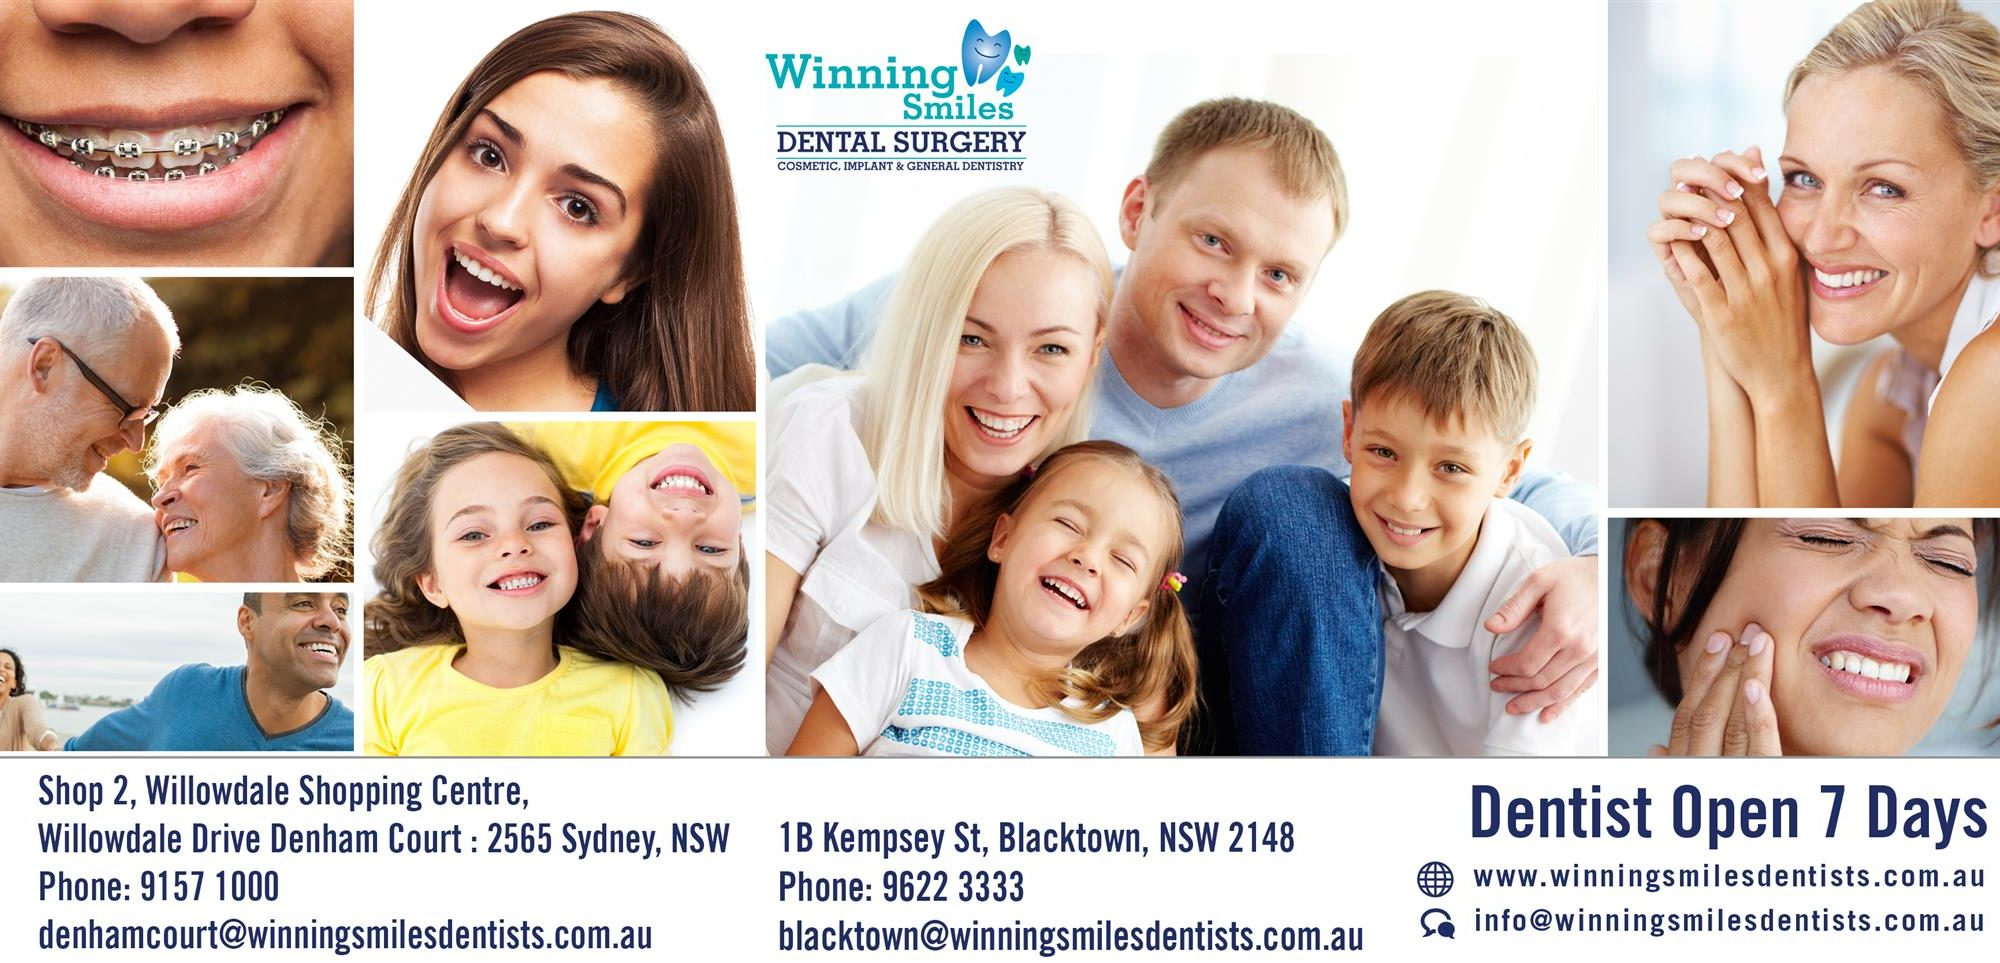 denham court dentist,wisdom tooth exctration,tootha pain,toothache,dental implants